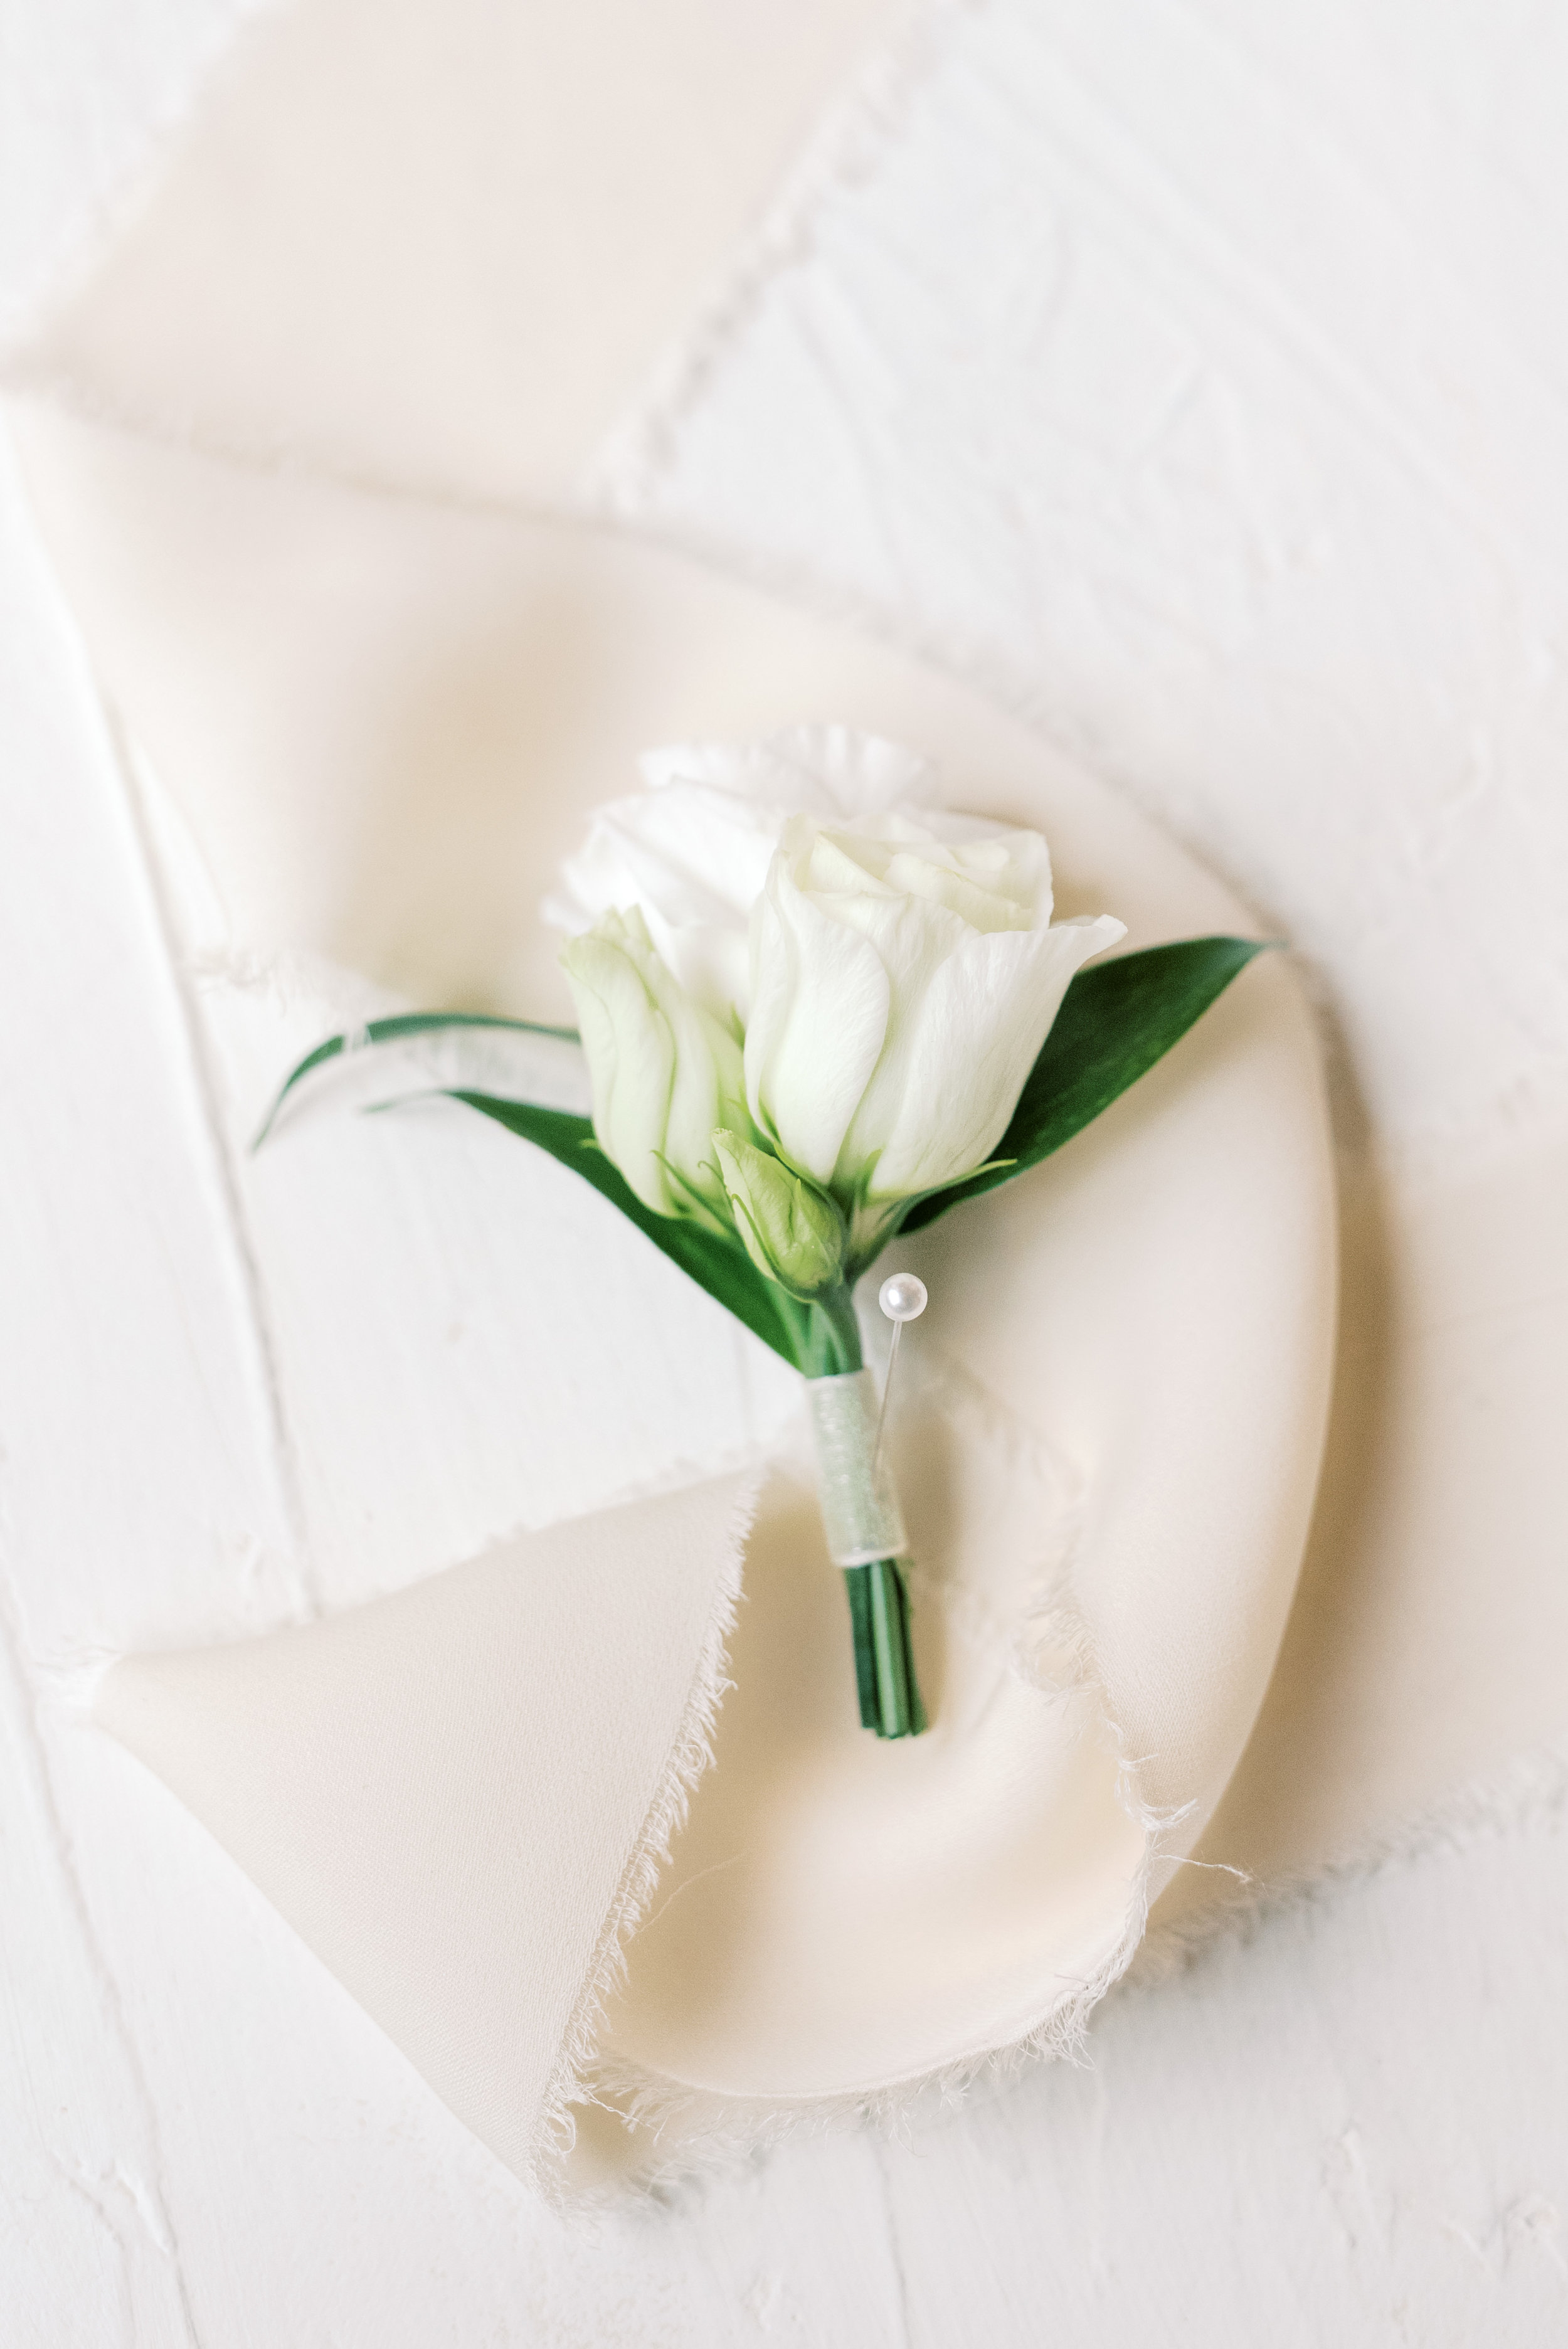 This simple white boutonniere was a perfect accent to this romantic and classic wedding day for their french inspired green and white Cairnwood Estate wedding